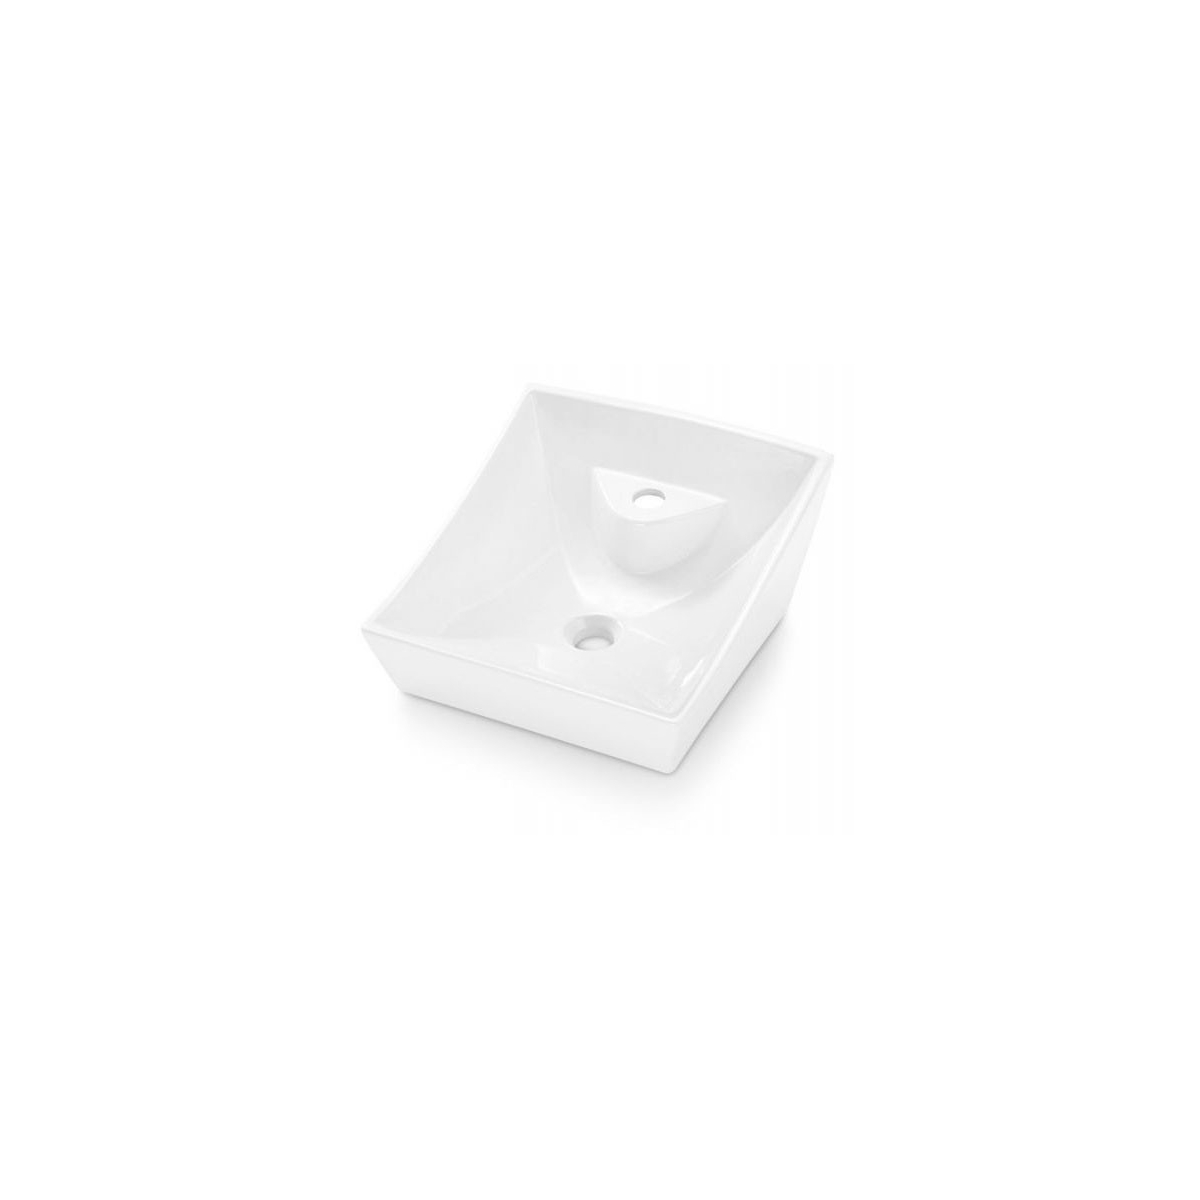 Lavabo Rectangular Soria - Lavabos rectangulares - Marca The Bathco